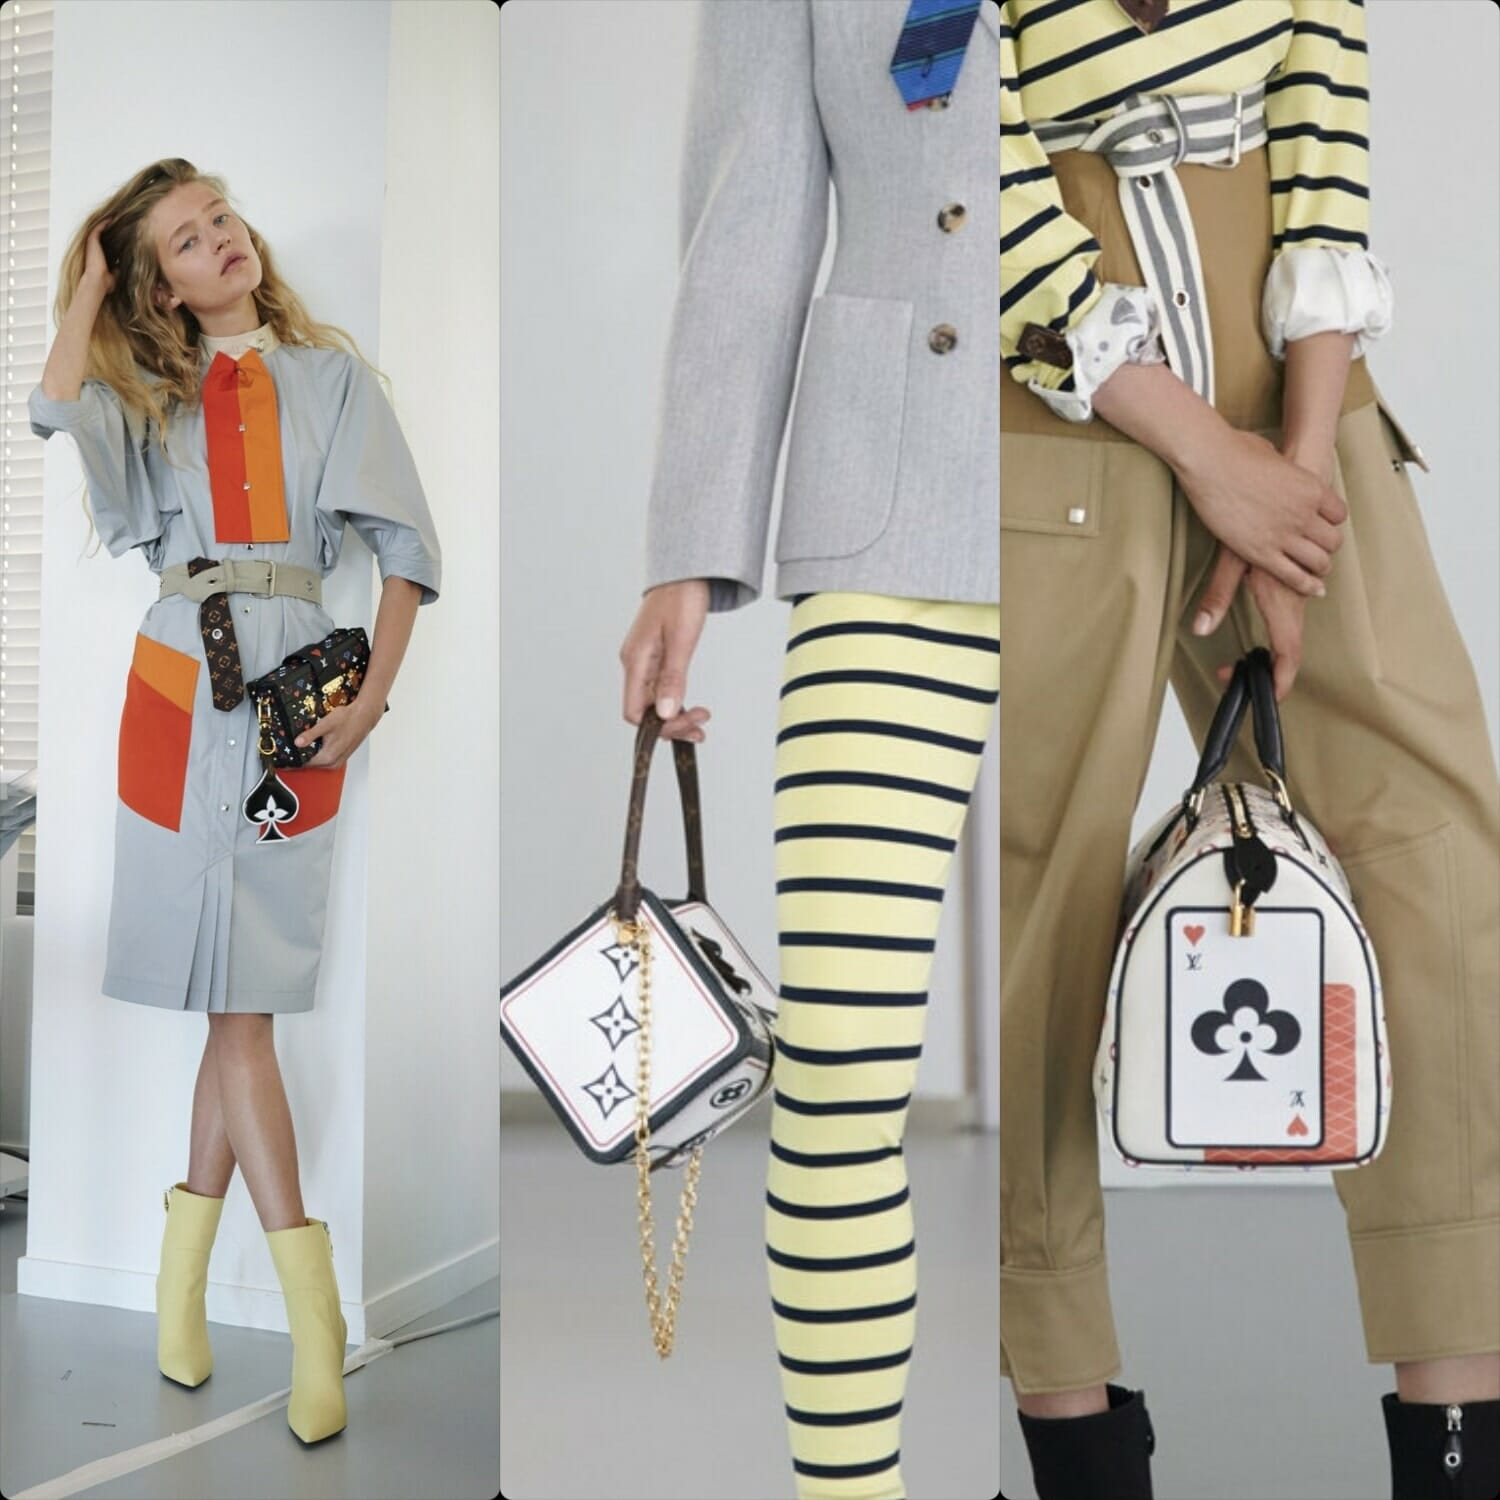 Louis Vuitton Cruise 2021 Resort. RUNWAY MAGAZINE ® Collections. RUNWAY NOW / RUNWAY NEW